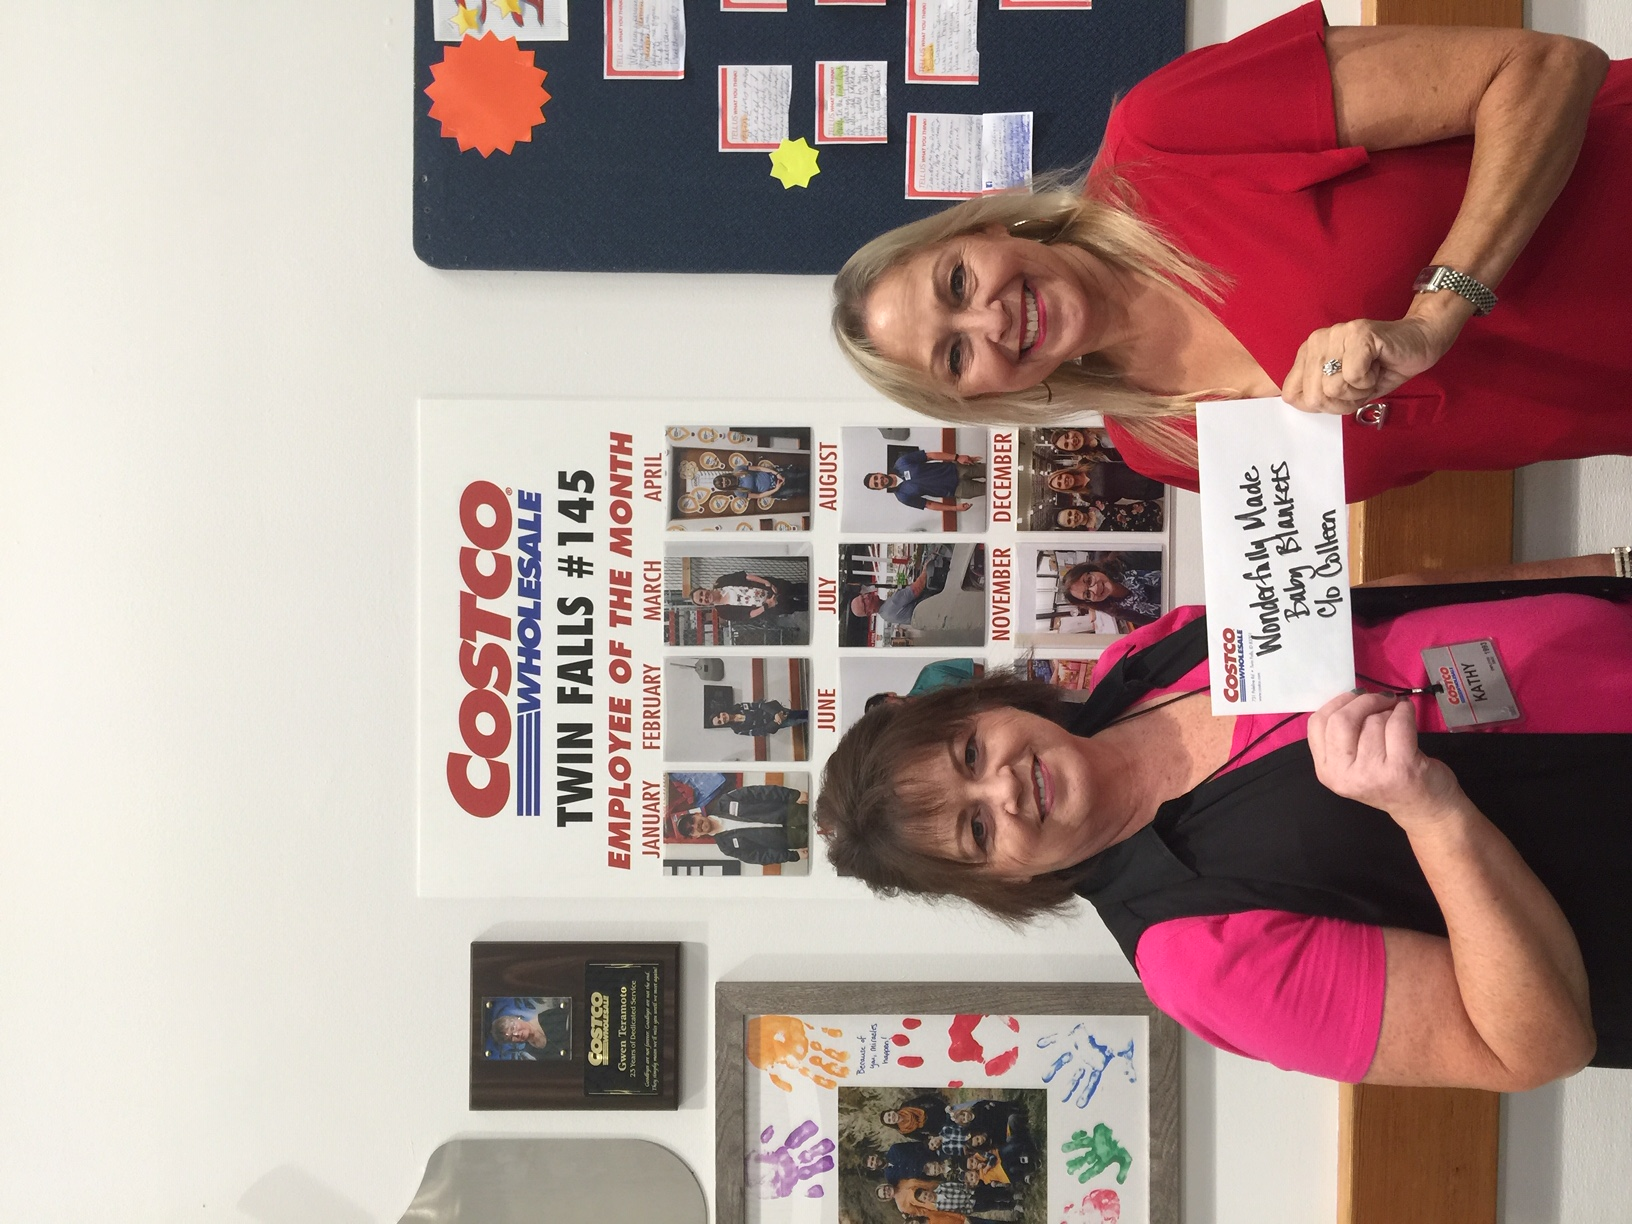 COSTCO - Twin Falls donates to WMBB